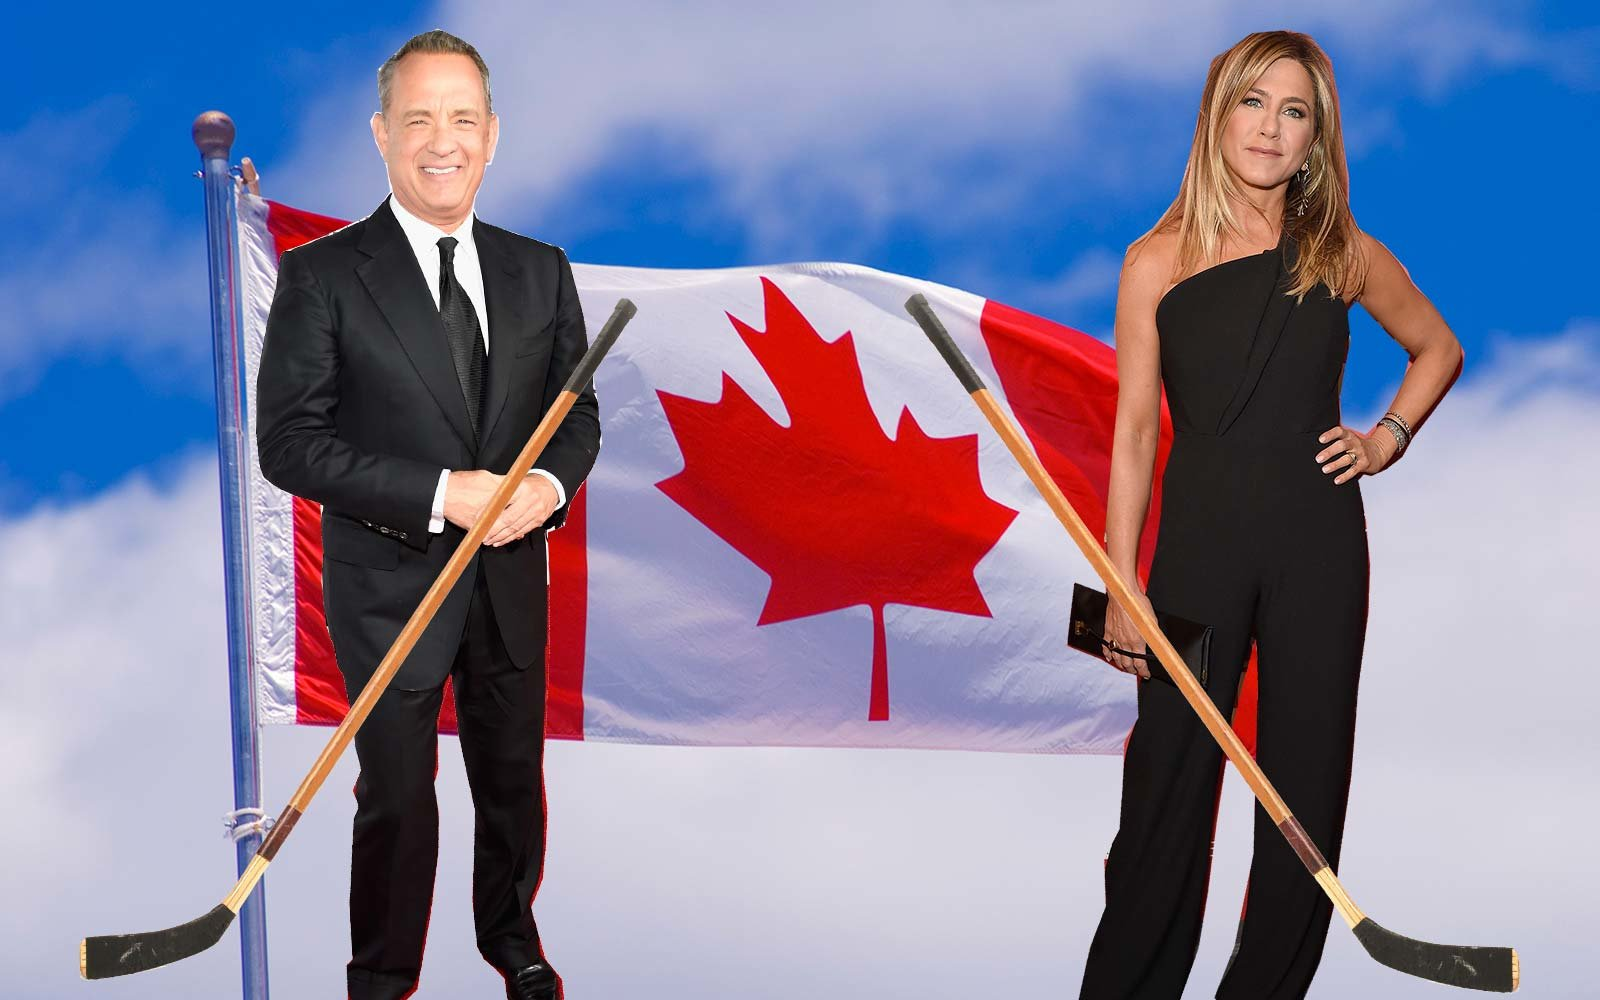 Canada wants to vacation with Tom Hanks and Jennifer Aniston